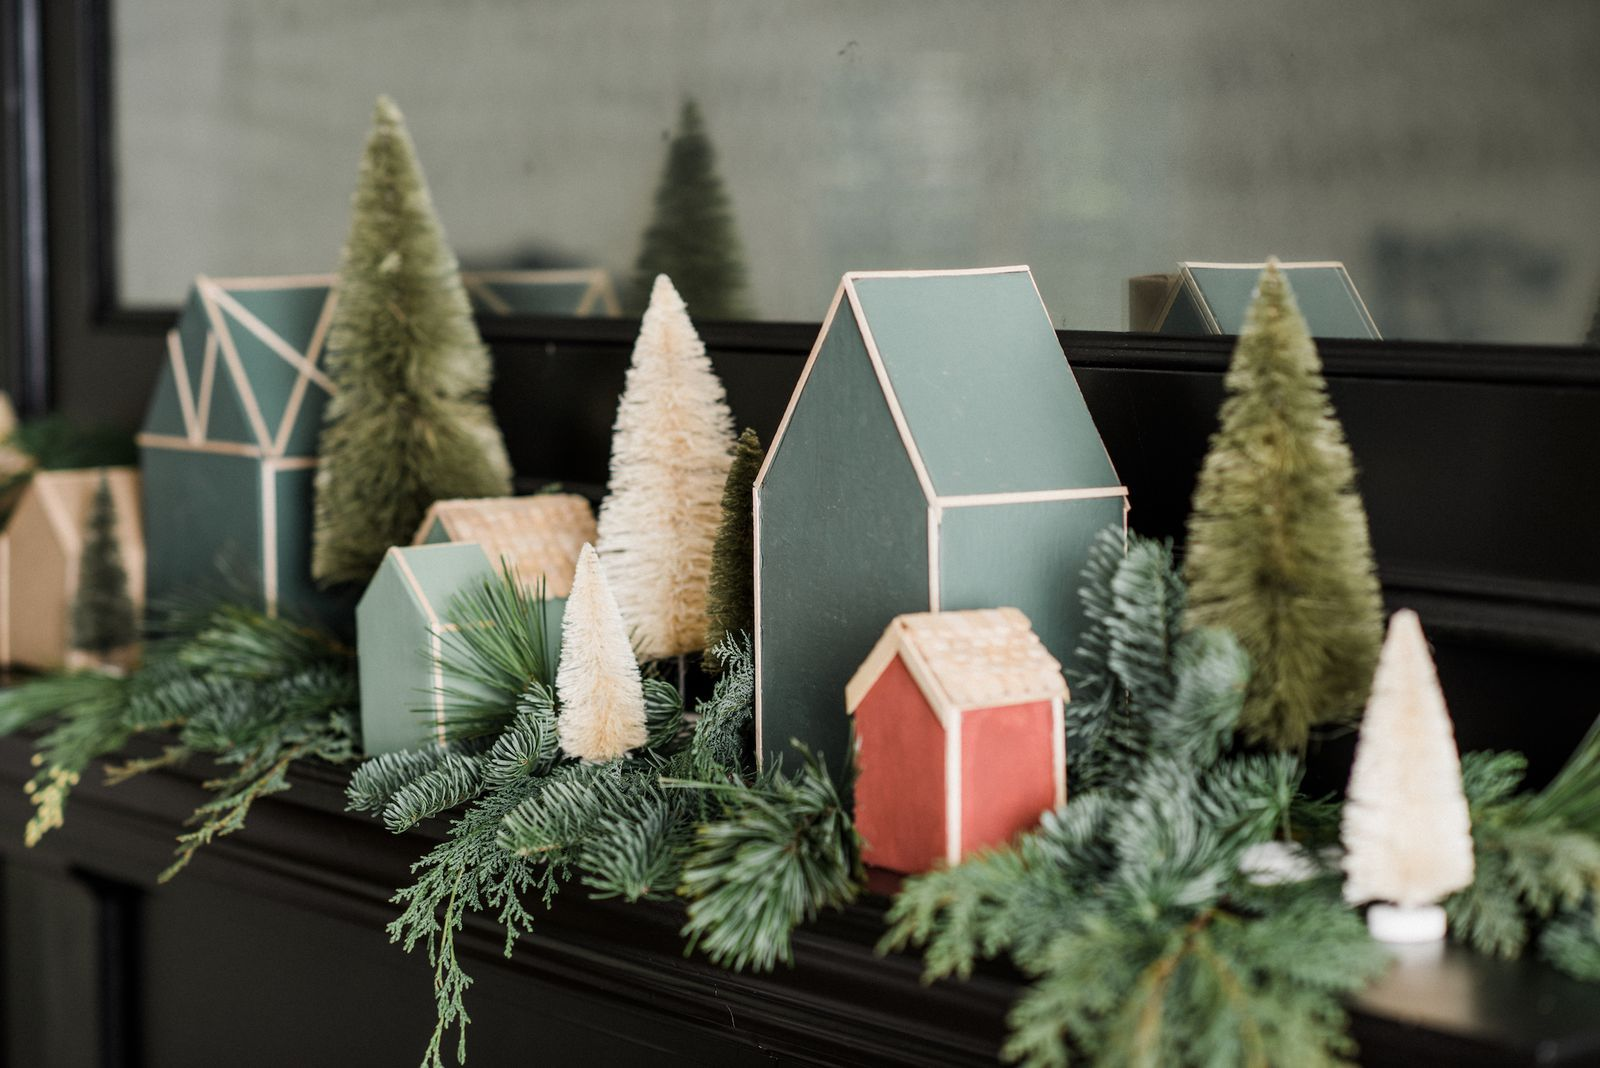 These Free Joanna Gaines's DIY Christmas Village Templates Are The Cutest Way To Decorate Your Mantel This Season